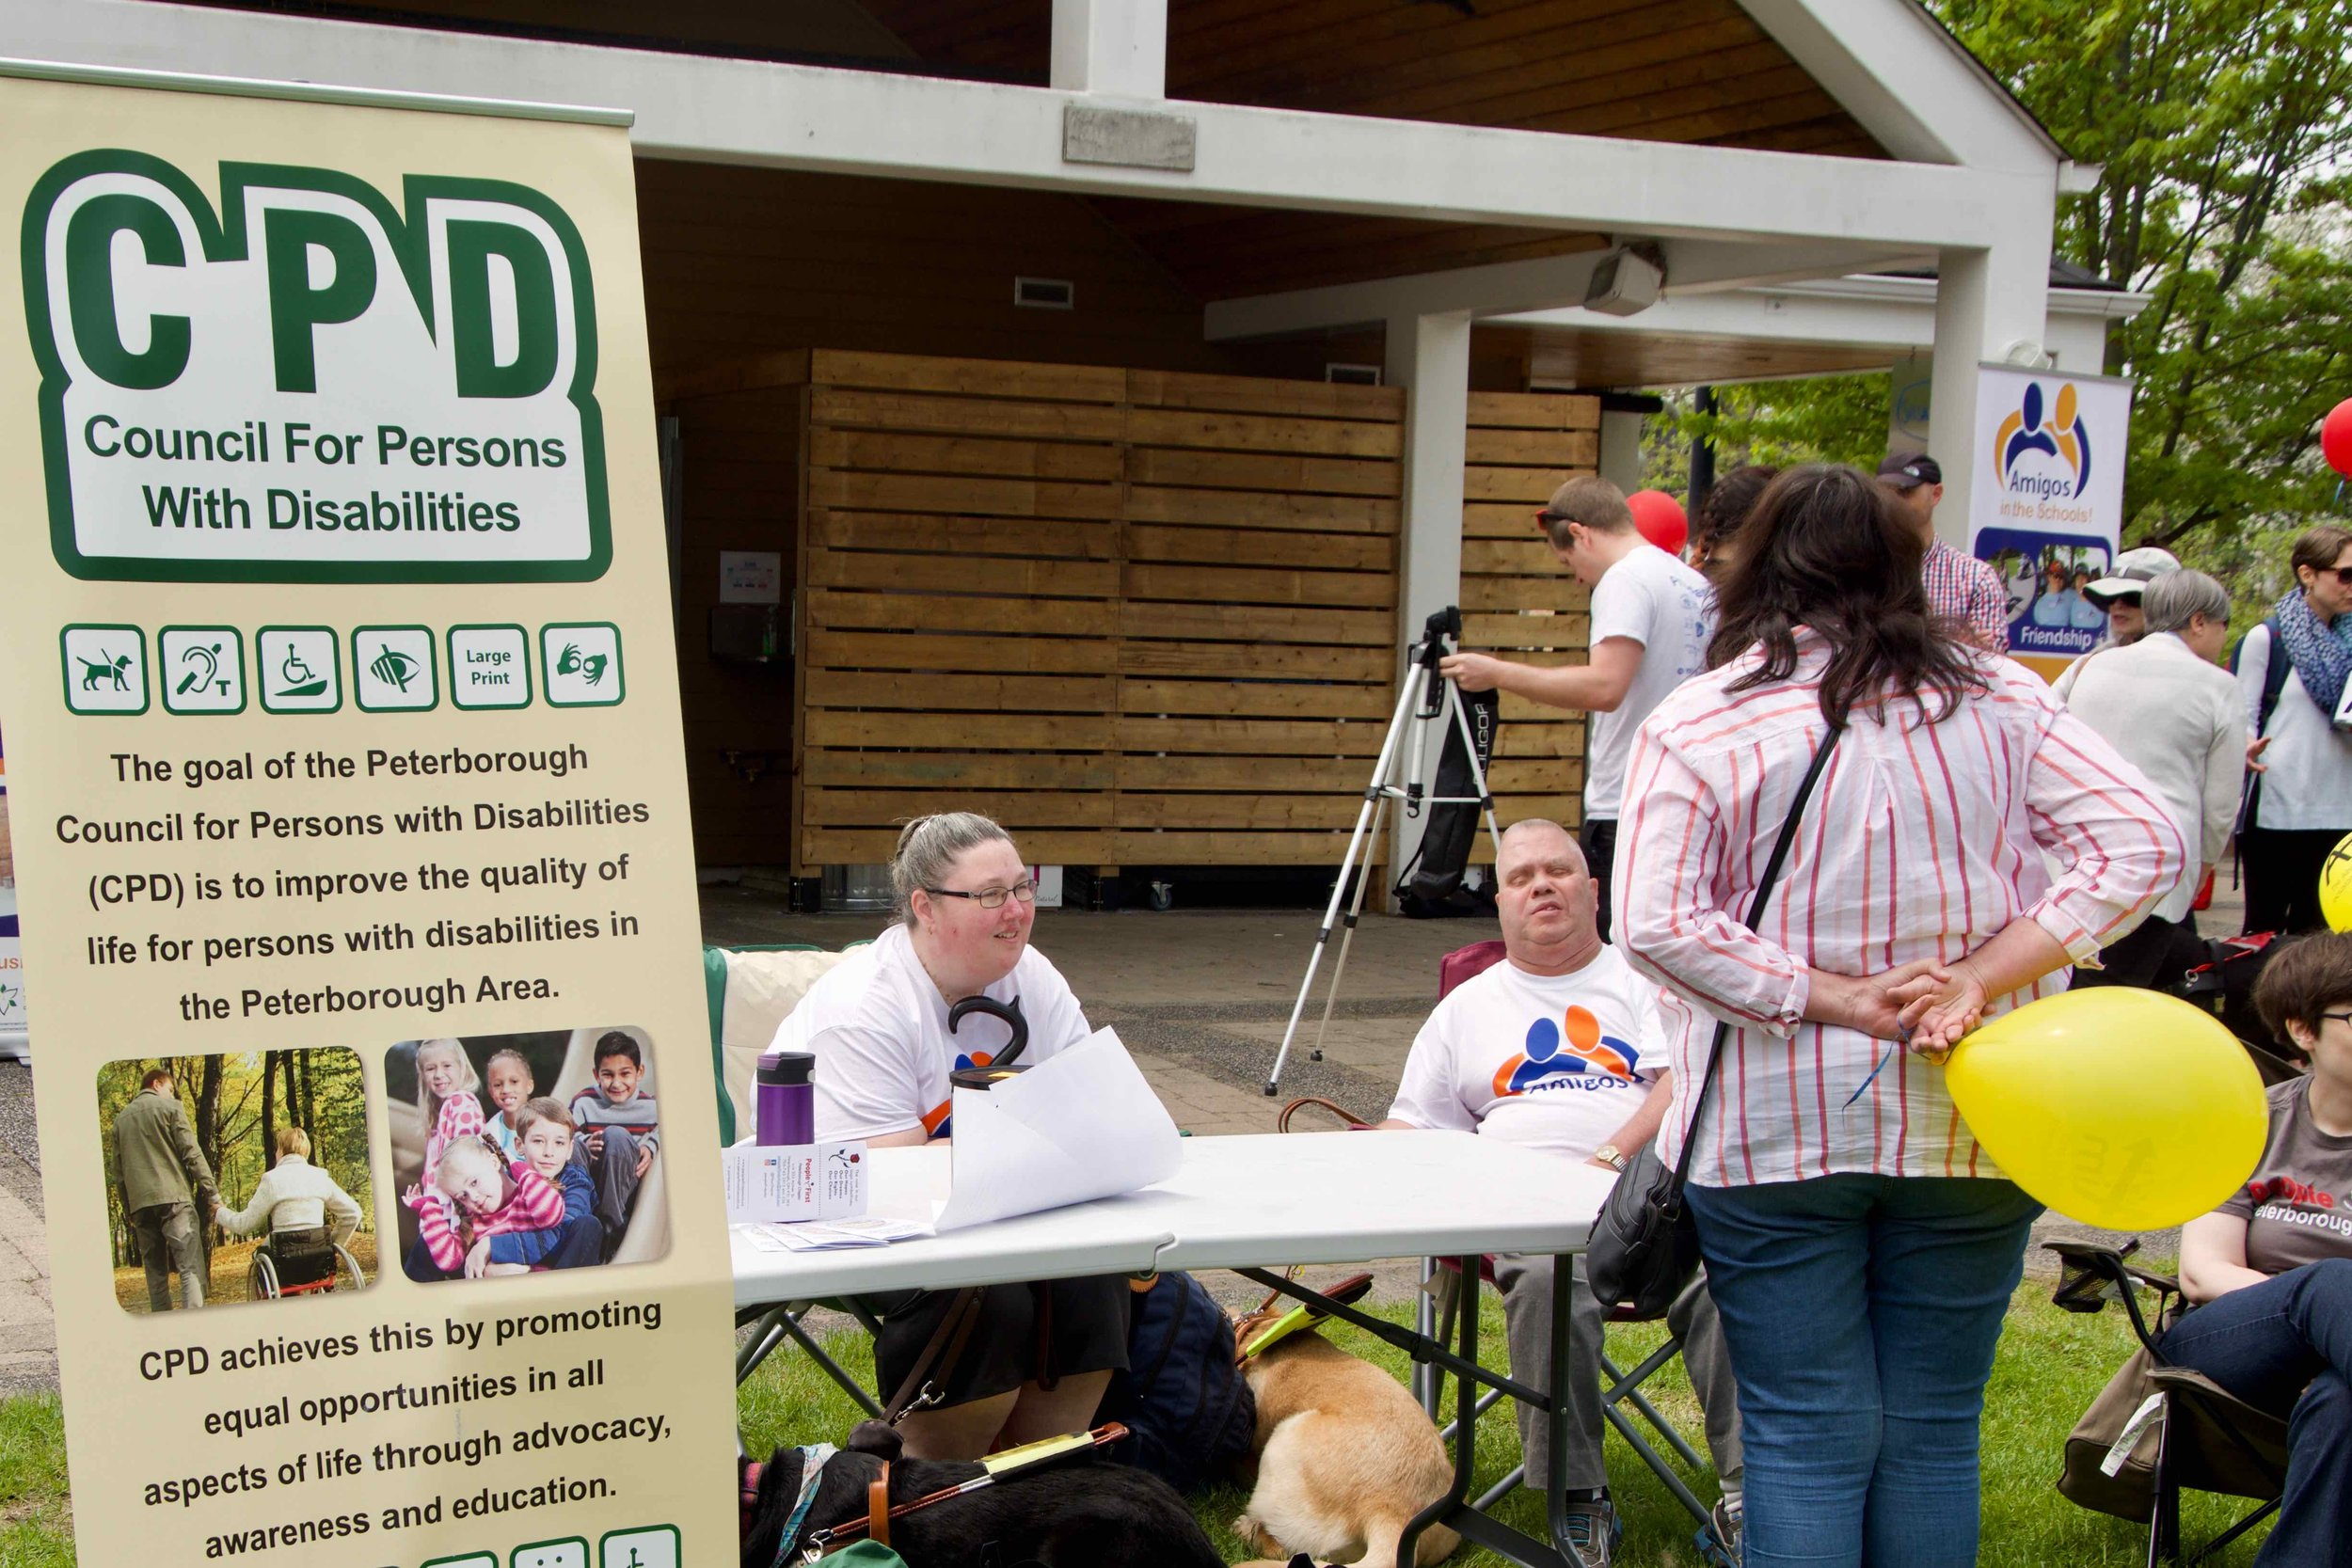 AIM Walk for Inclusion - Lynn & John at the CPD Table